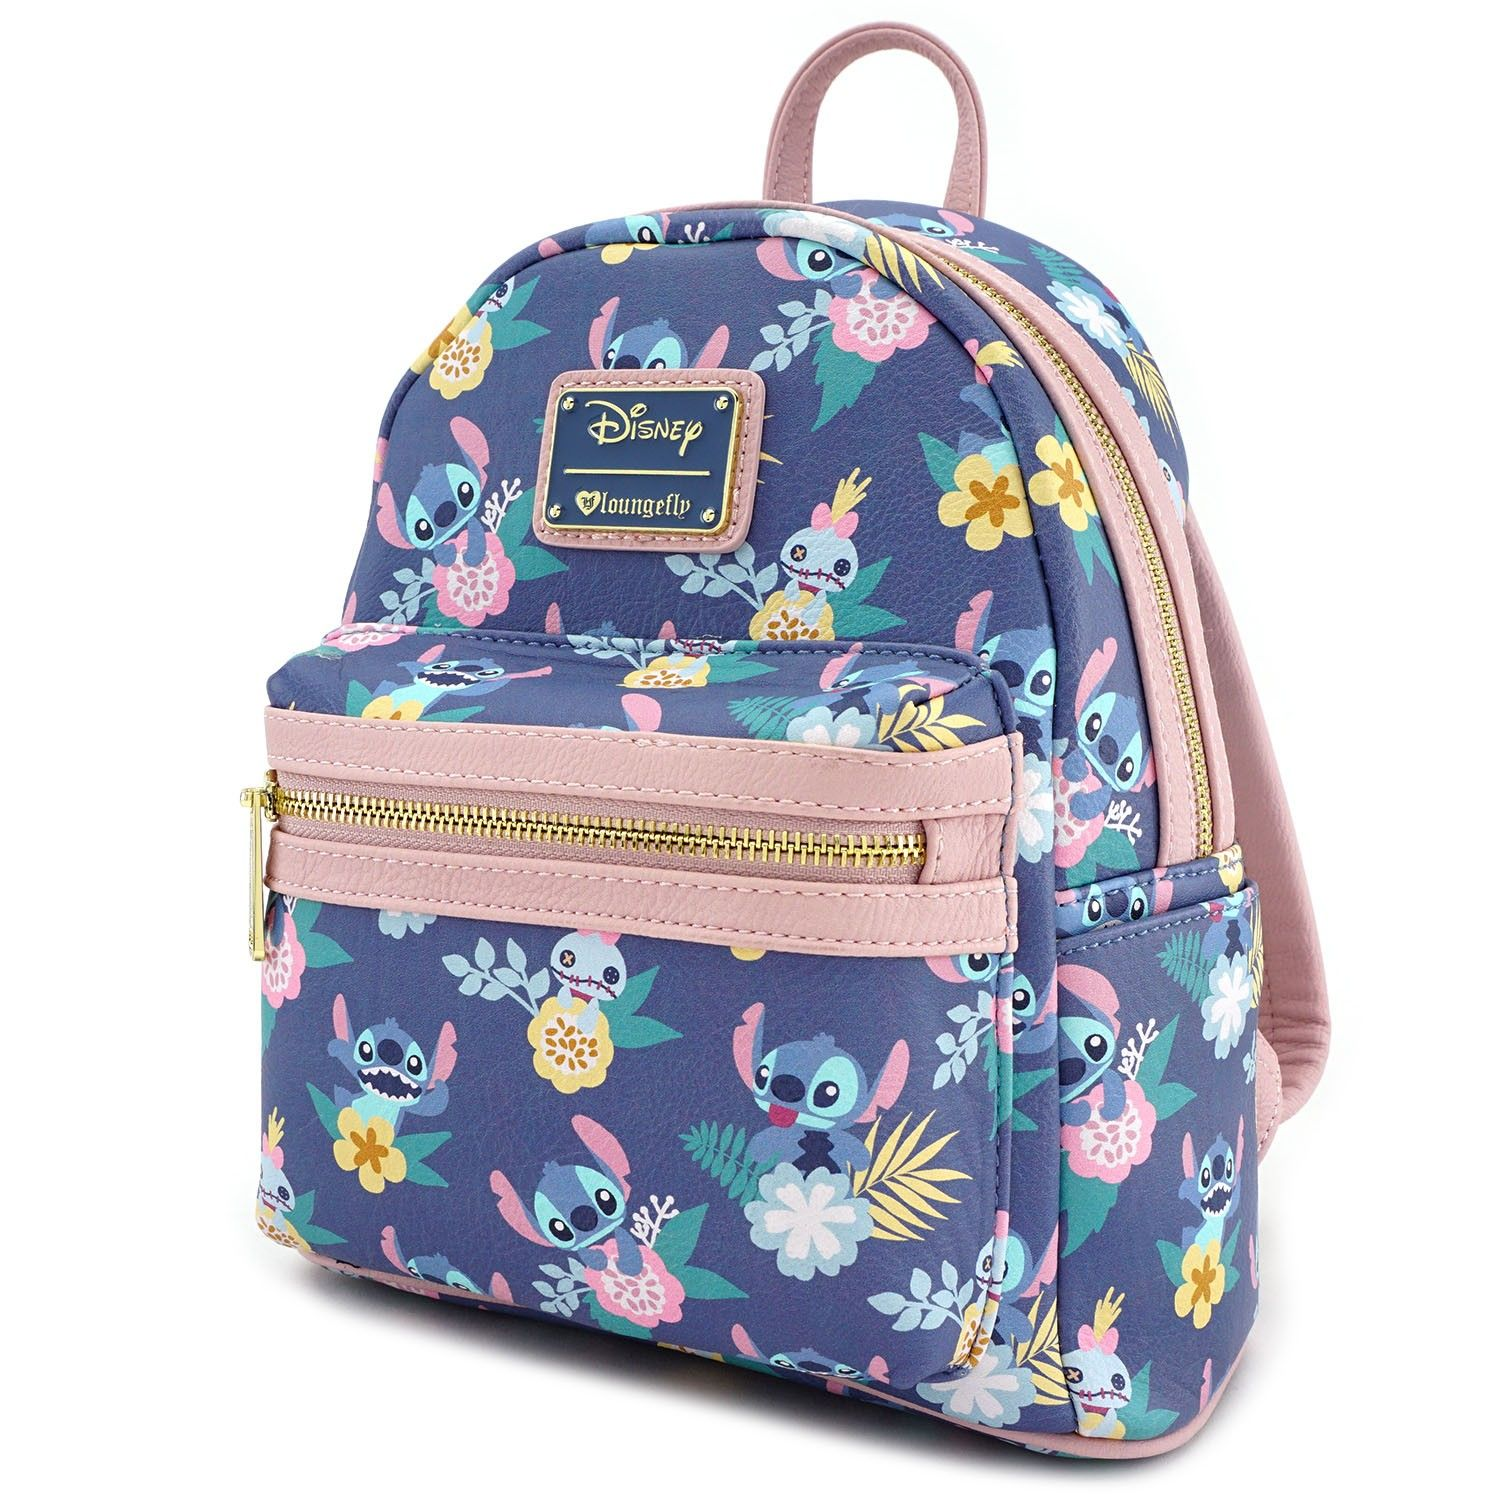 e81b6cacff Loungefly x Stitch   Scrump Floral Print Mini Faux Leather Backpack -  Backpacks - Whats New